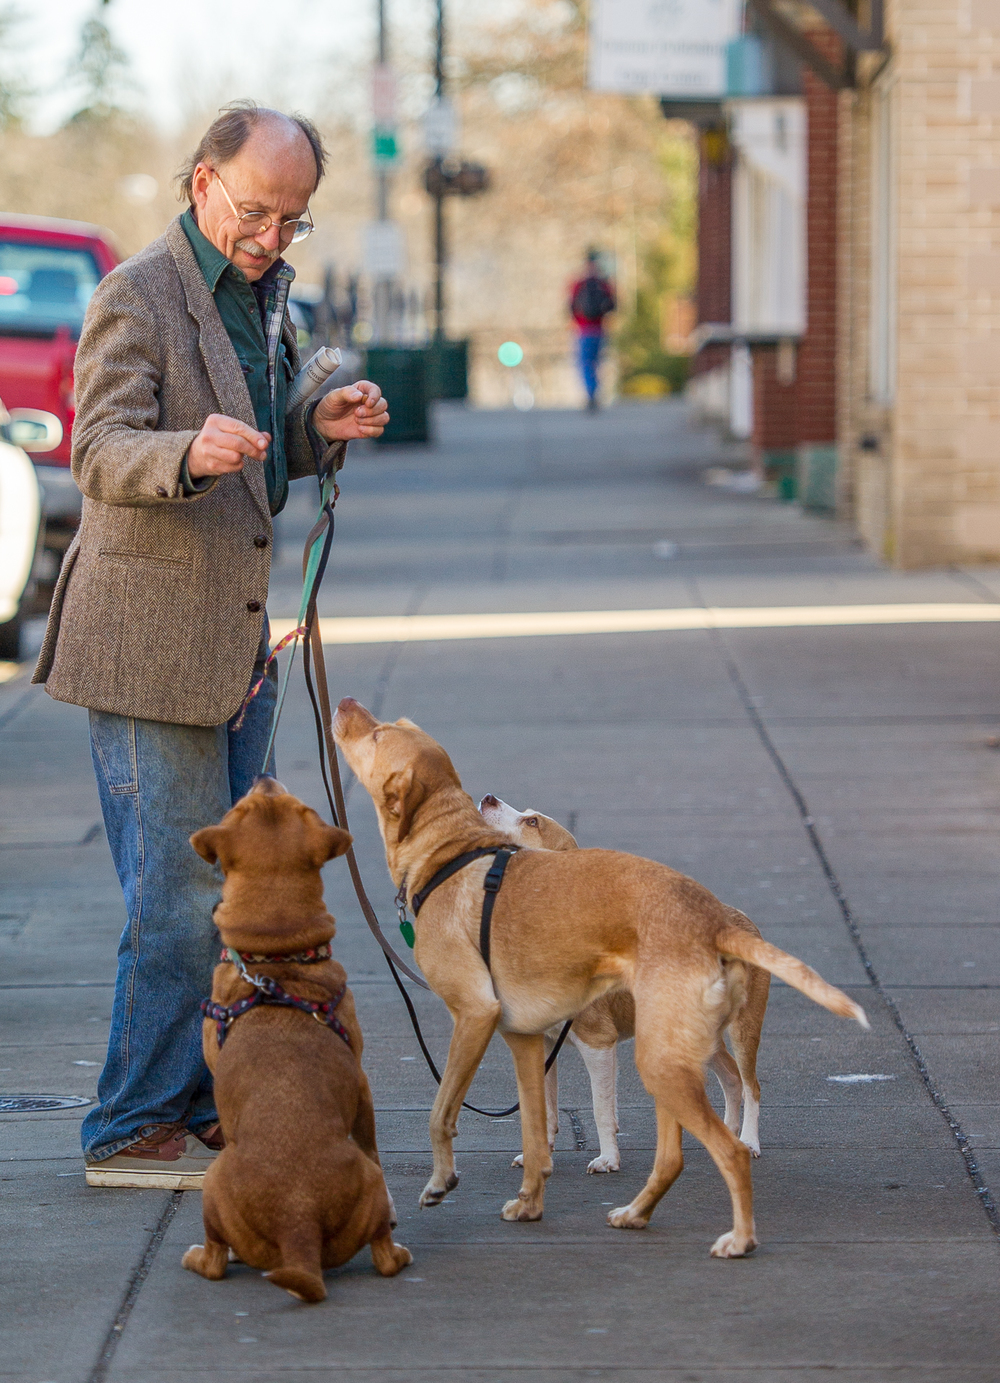 Tom Mantey, of Athens, Ohio, walks his three dogs down Athens' Union and Court streets on Monday, January 19, 2015. Mantey, owner of several pets, stops to show off a trick with his dogs.